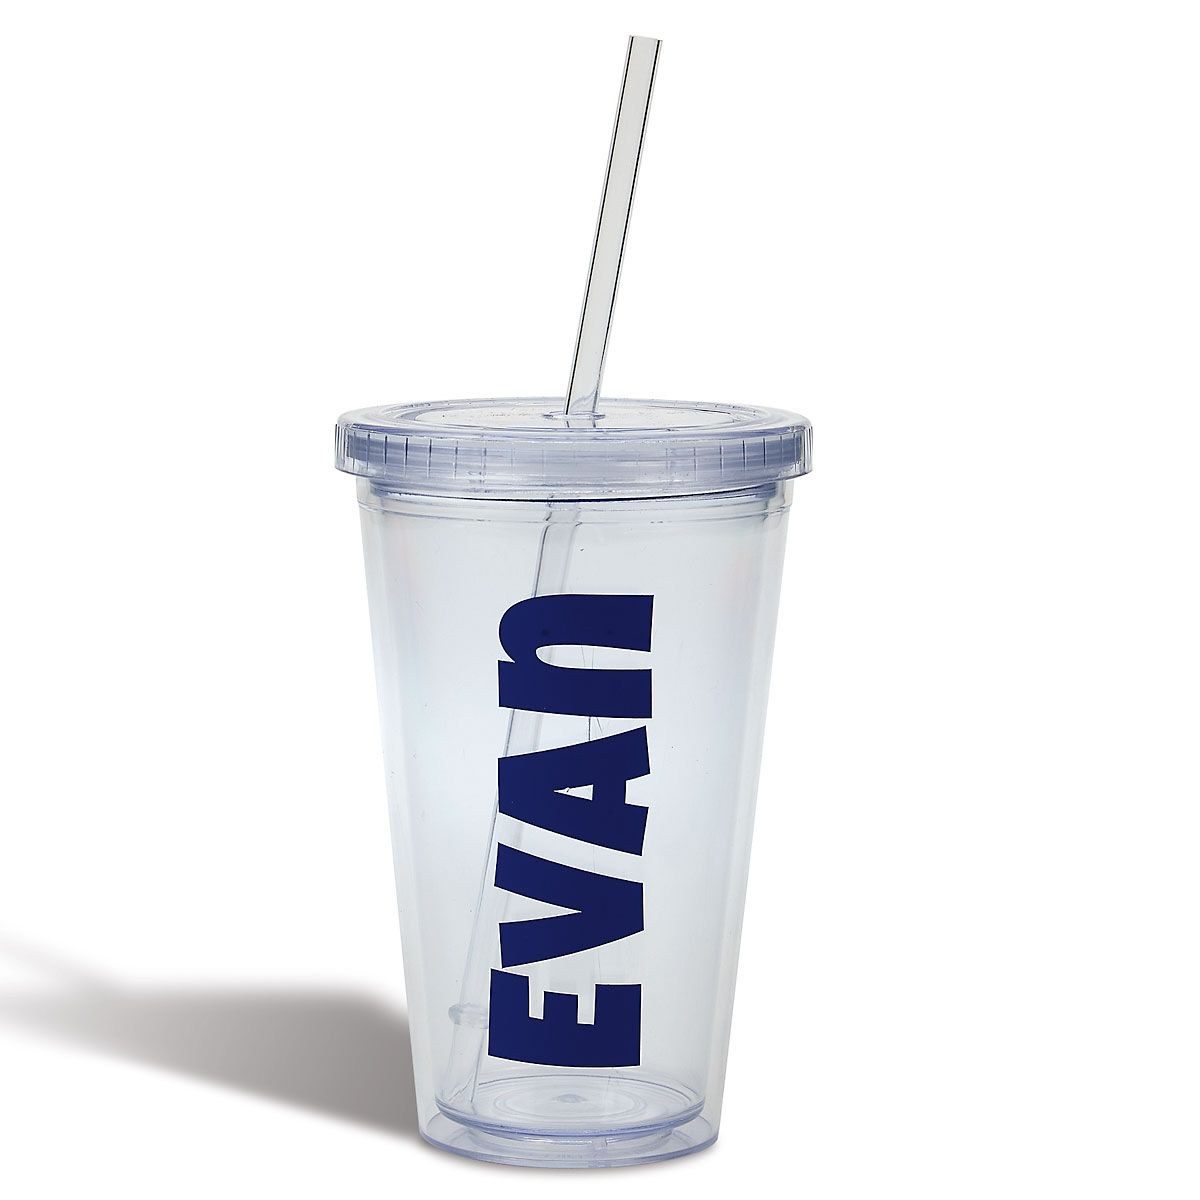 Personalized Acrylic Beverage Cup - Blue